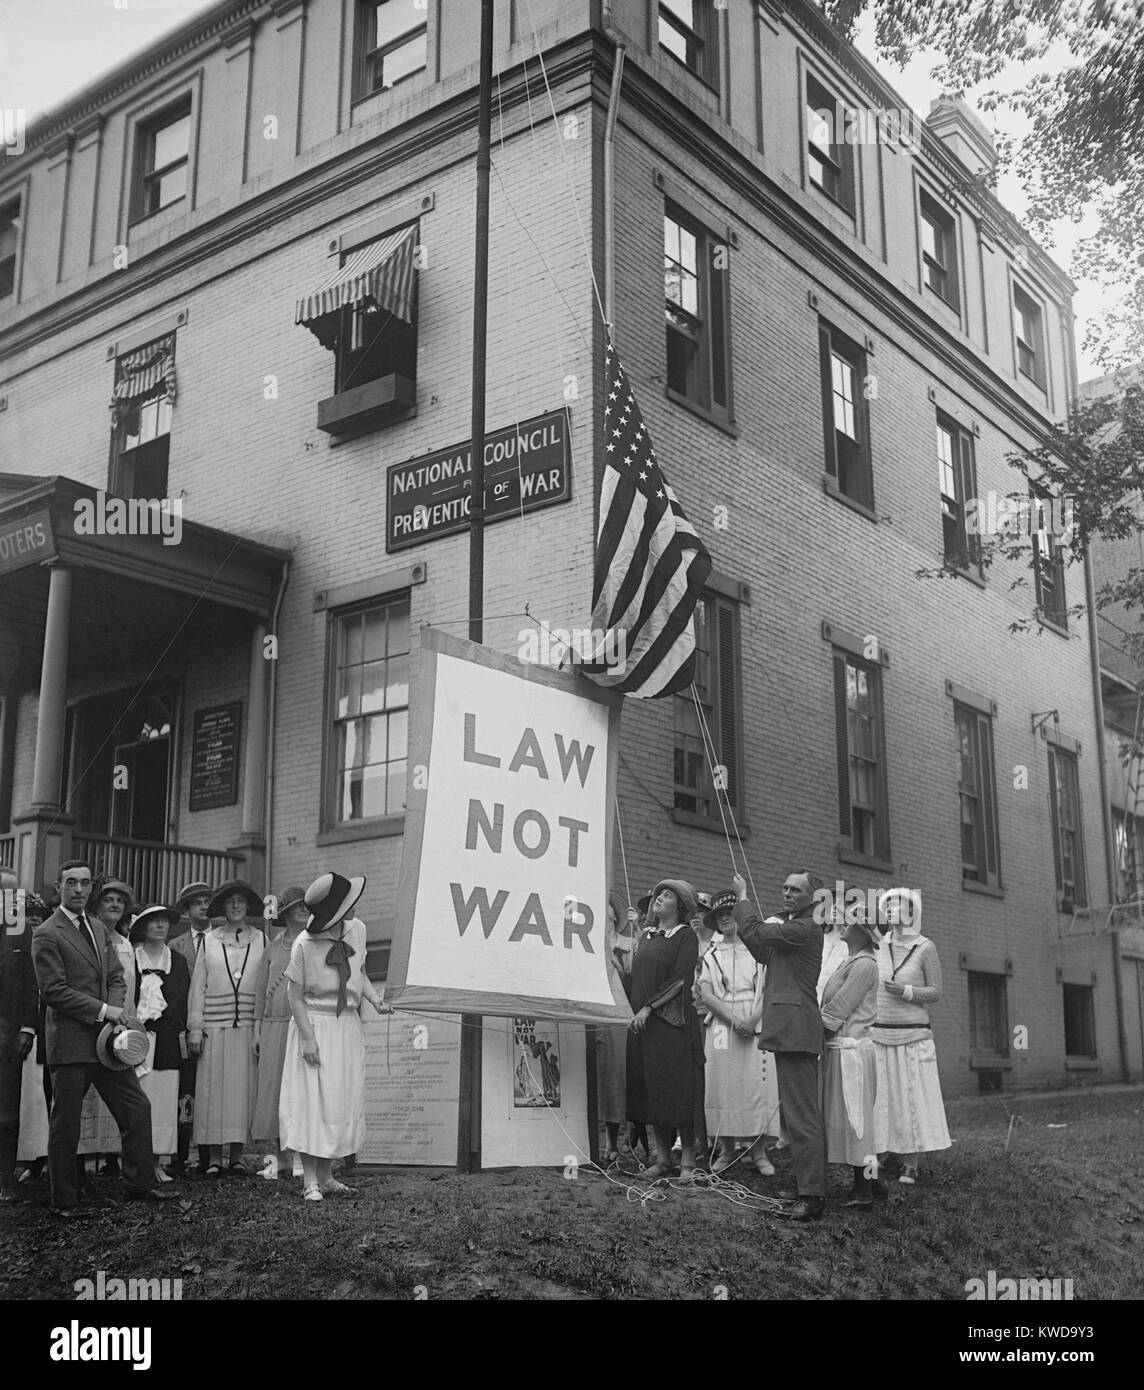 Raising the LAW NOT WAR banner over the HQ of the Council for Limitation of Armaments. July 23, 1923. The Council - Stock Image